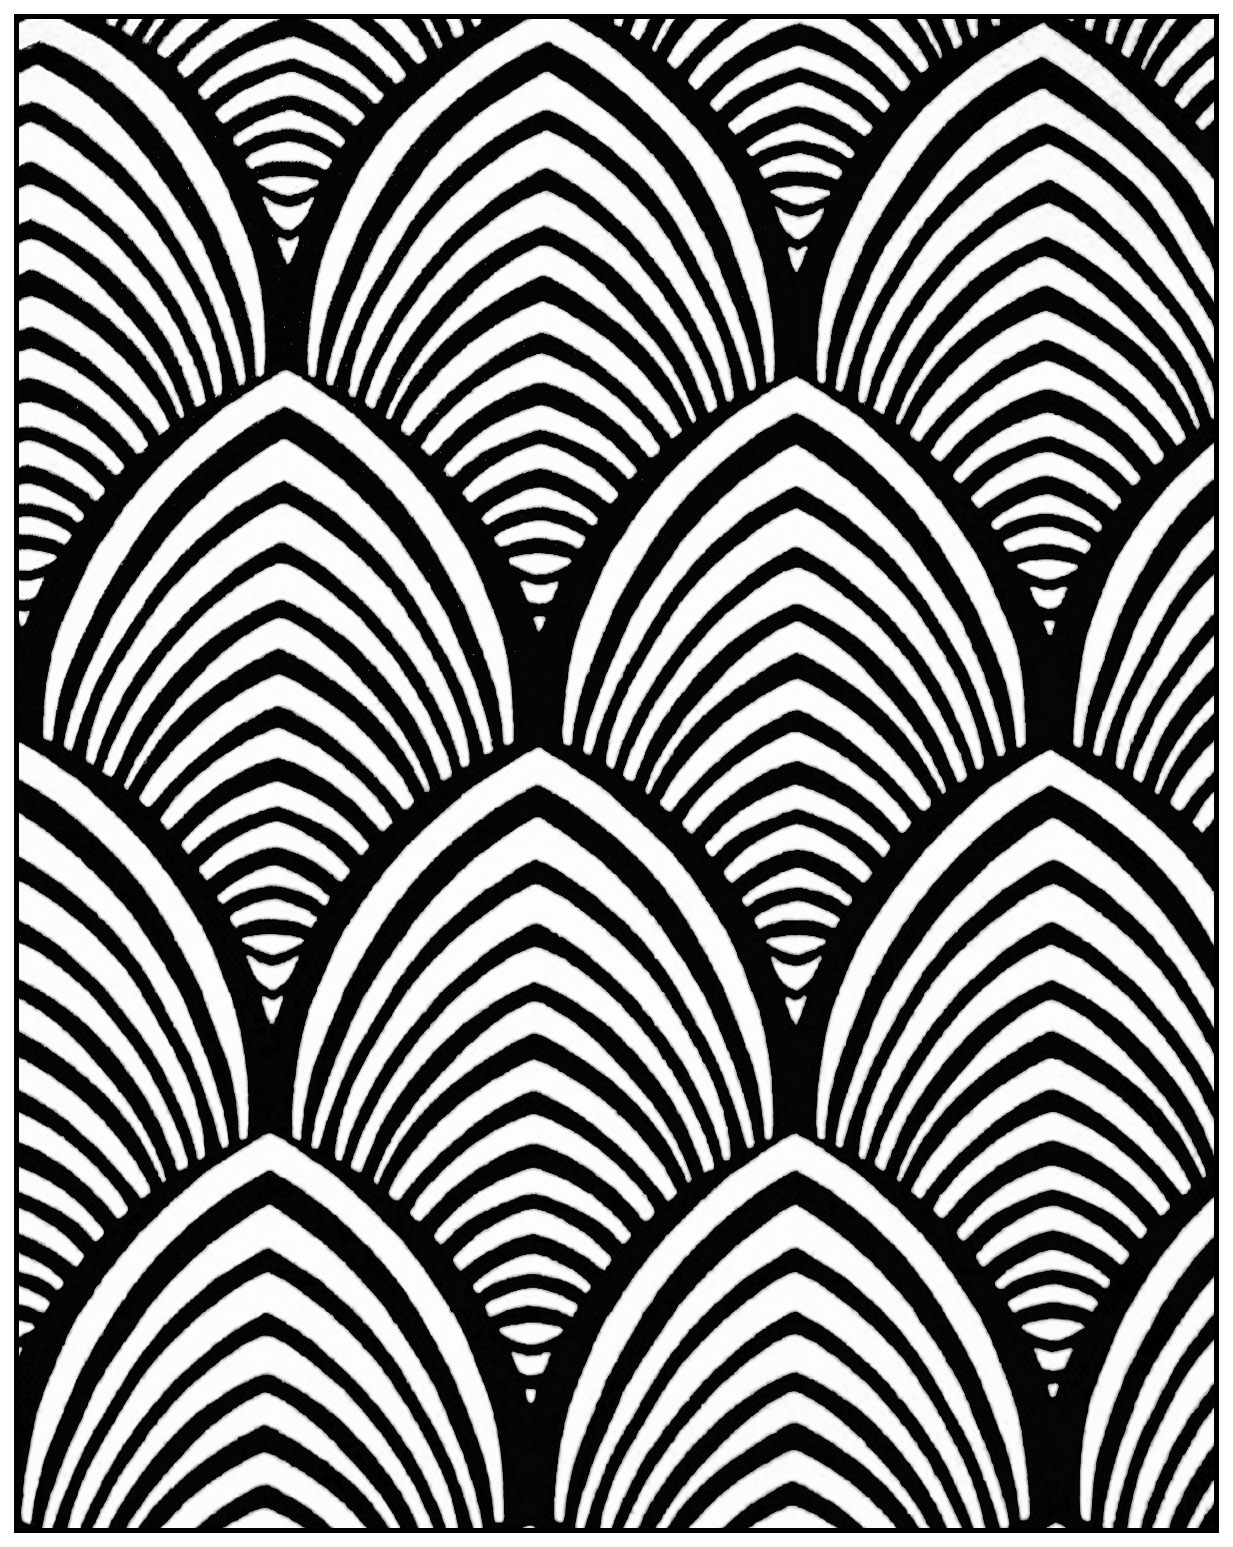 art deco pattern adult coloring page style n4 from the gallery - Coloring Pages Patterns Geometric